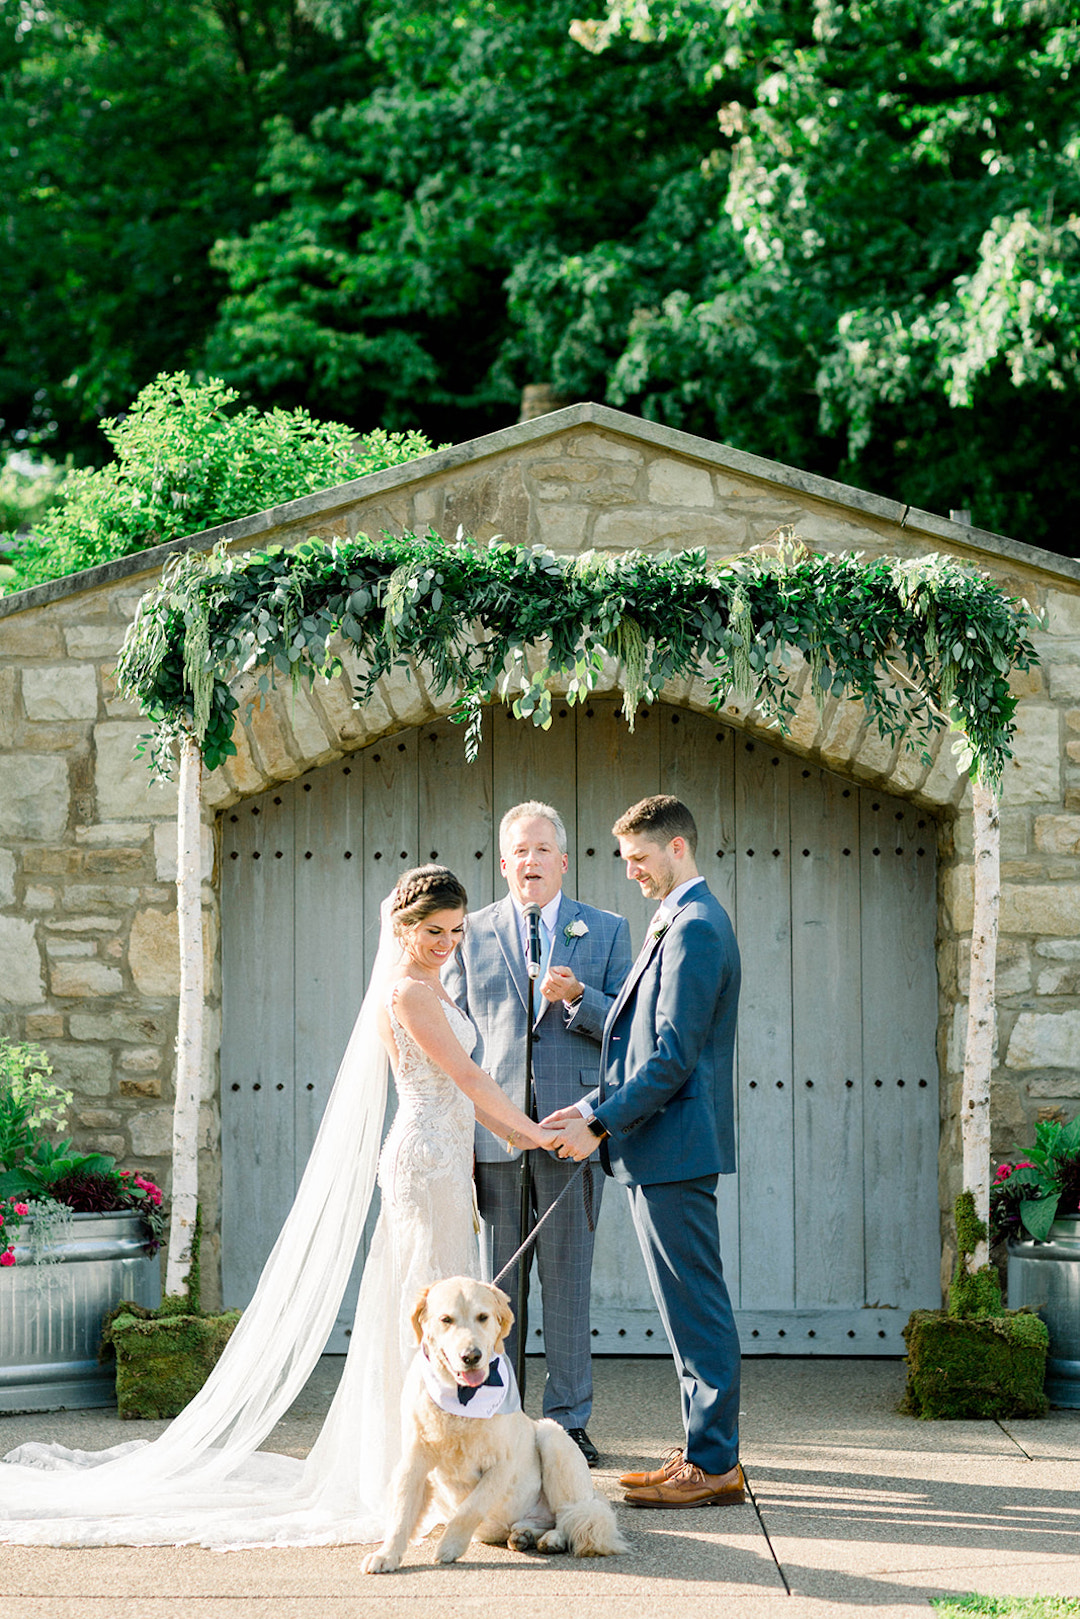 Beautiful wood and greenery ceremony arch: Sunset wedding photos:Pittsburgh Botanic Garden wedding planned by Exhale Events. See more wedding inspiration at exhale-events.com!